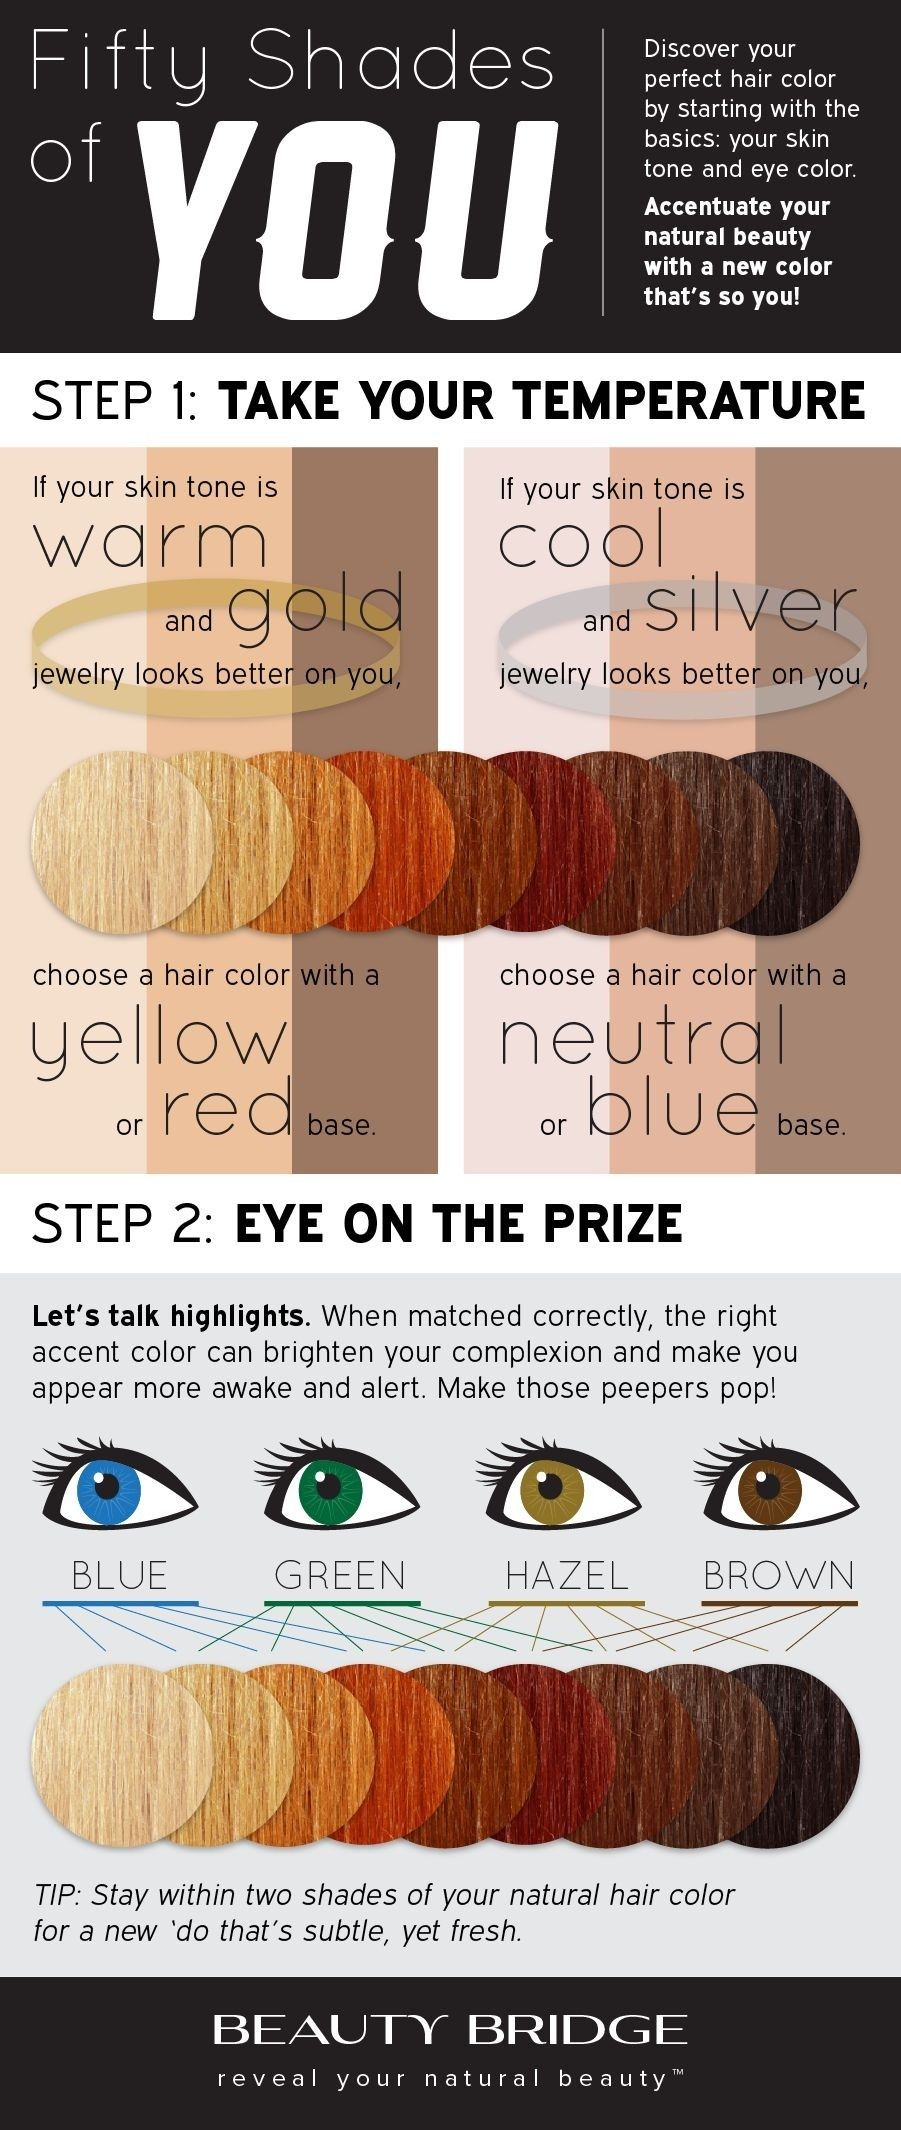 Find Your Perfect Hair Color Based On Your Skin Type And Eye Color